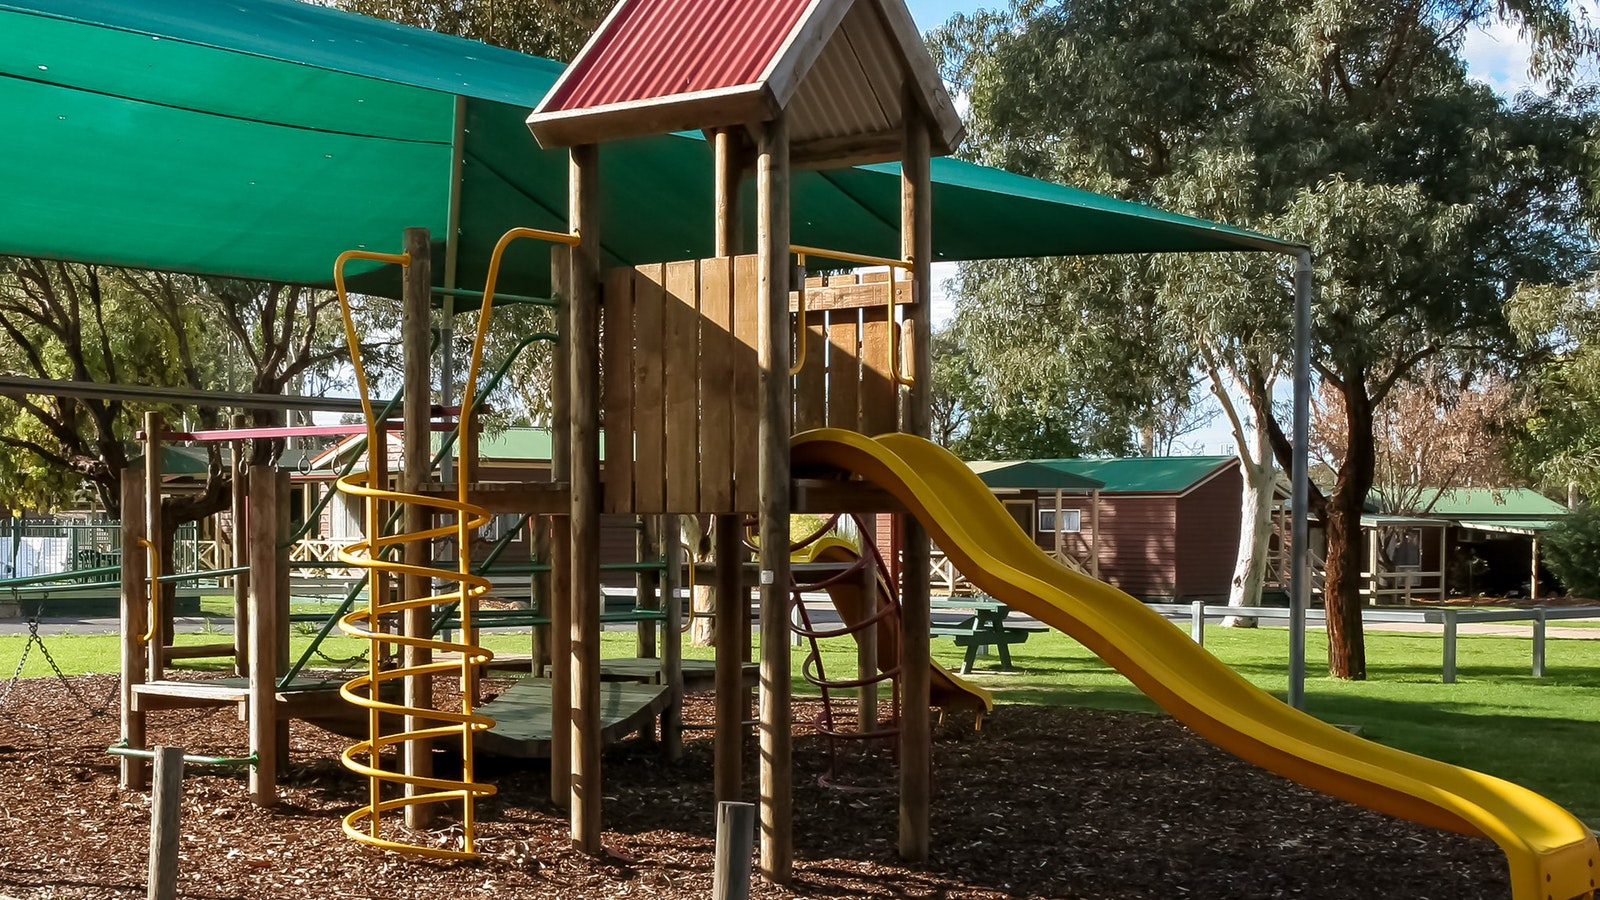 Adventure playground with ladders and slides.